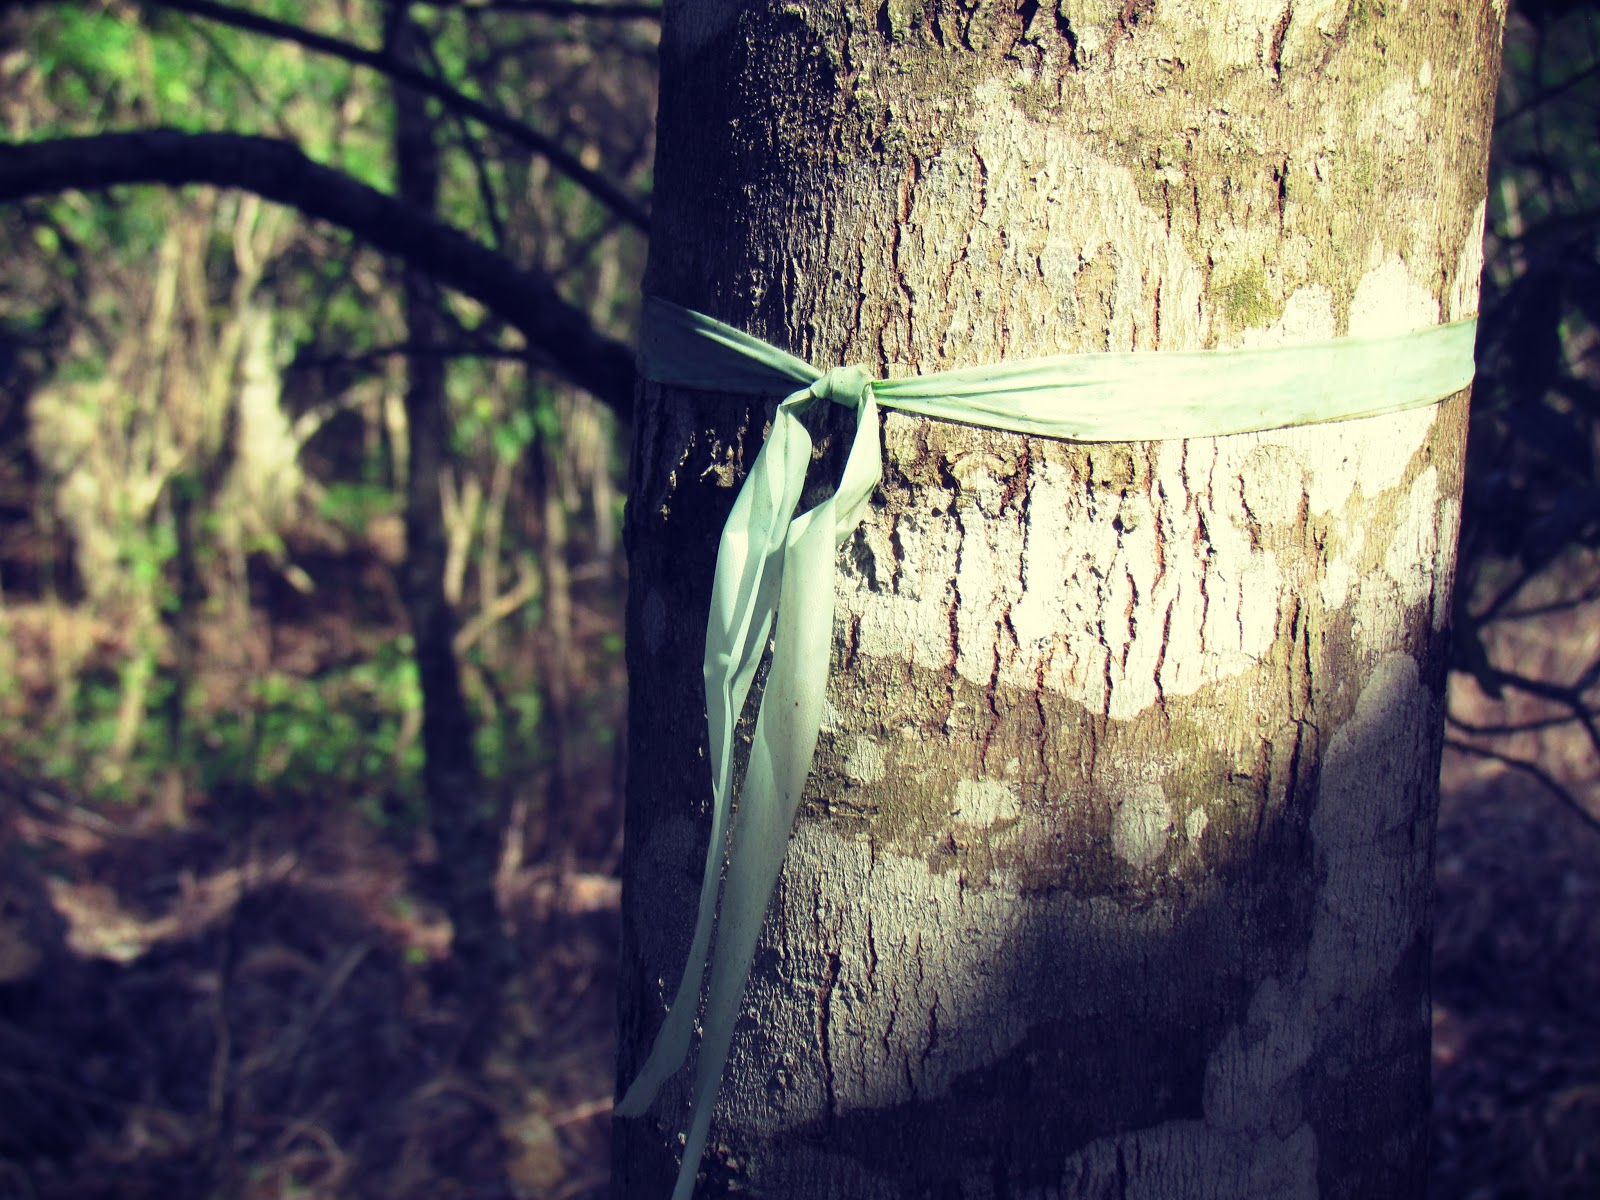 Trees Protected By Blue Ribbons in Florida at Hammock Park